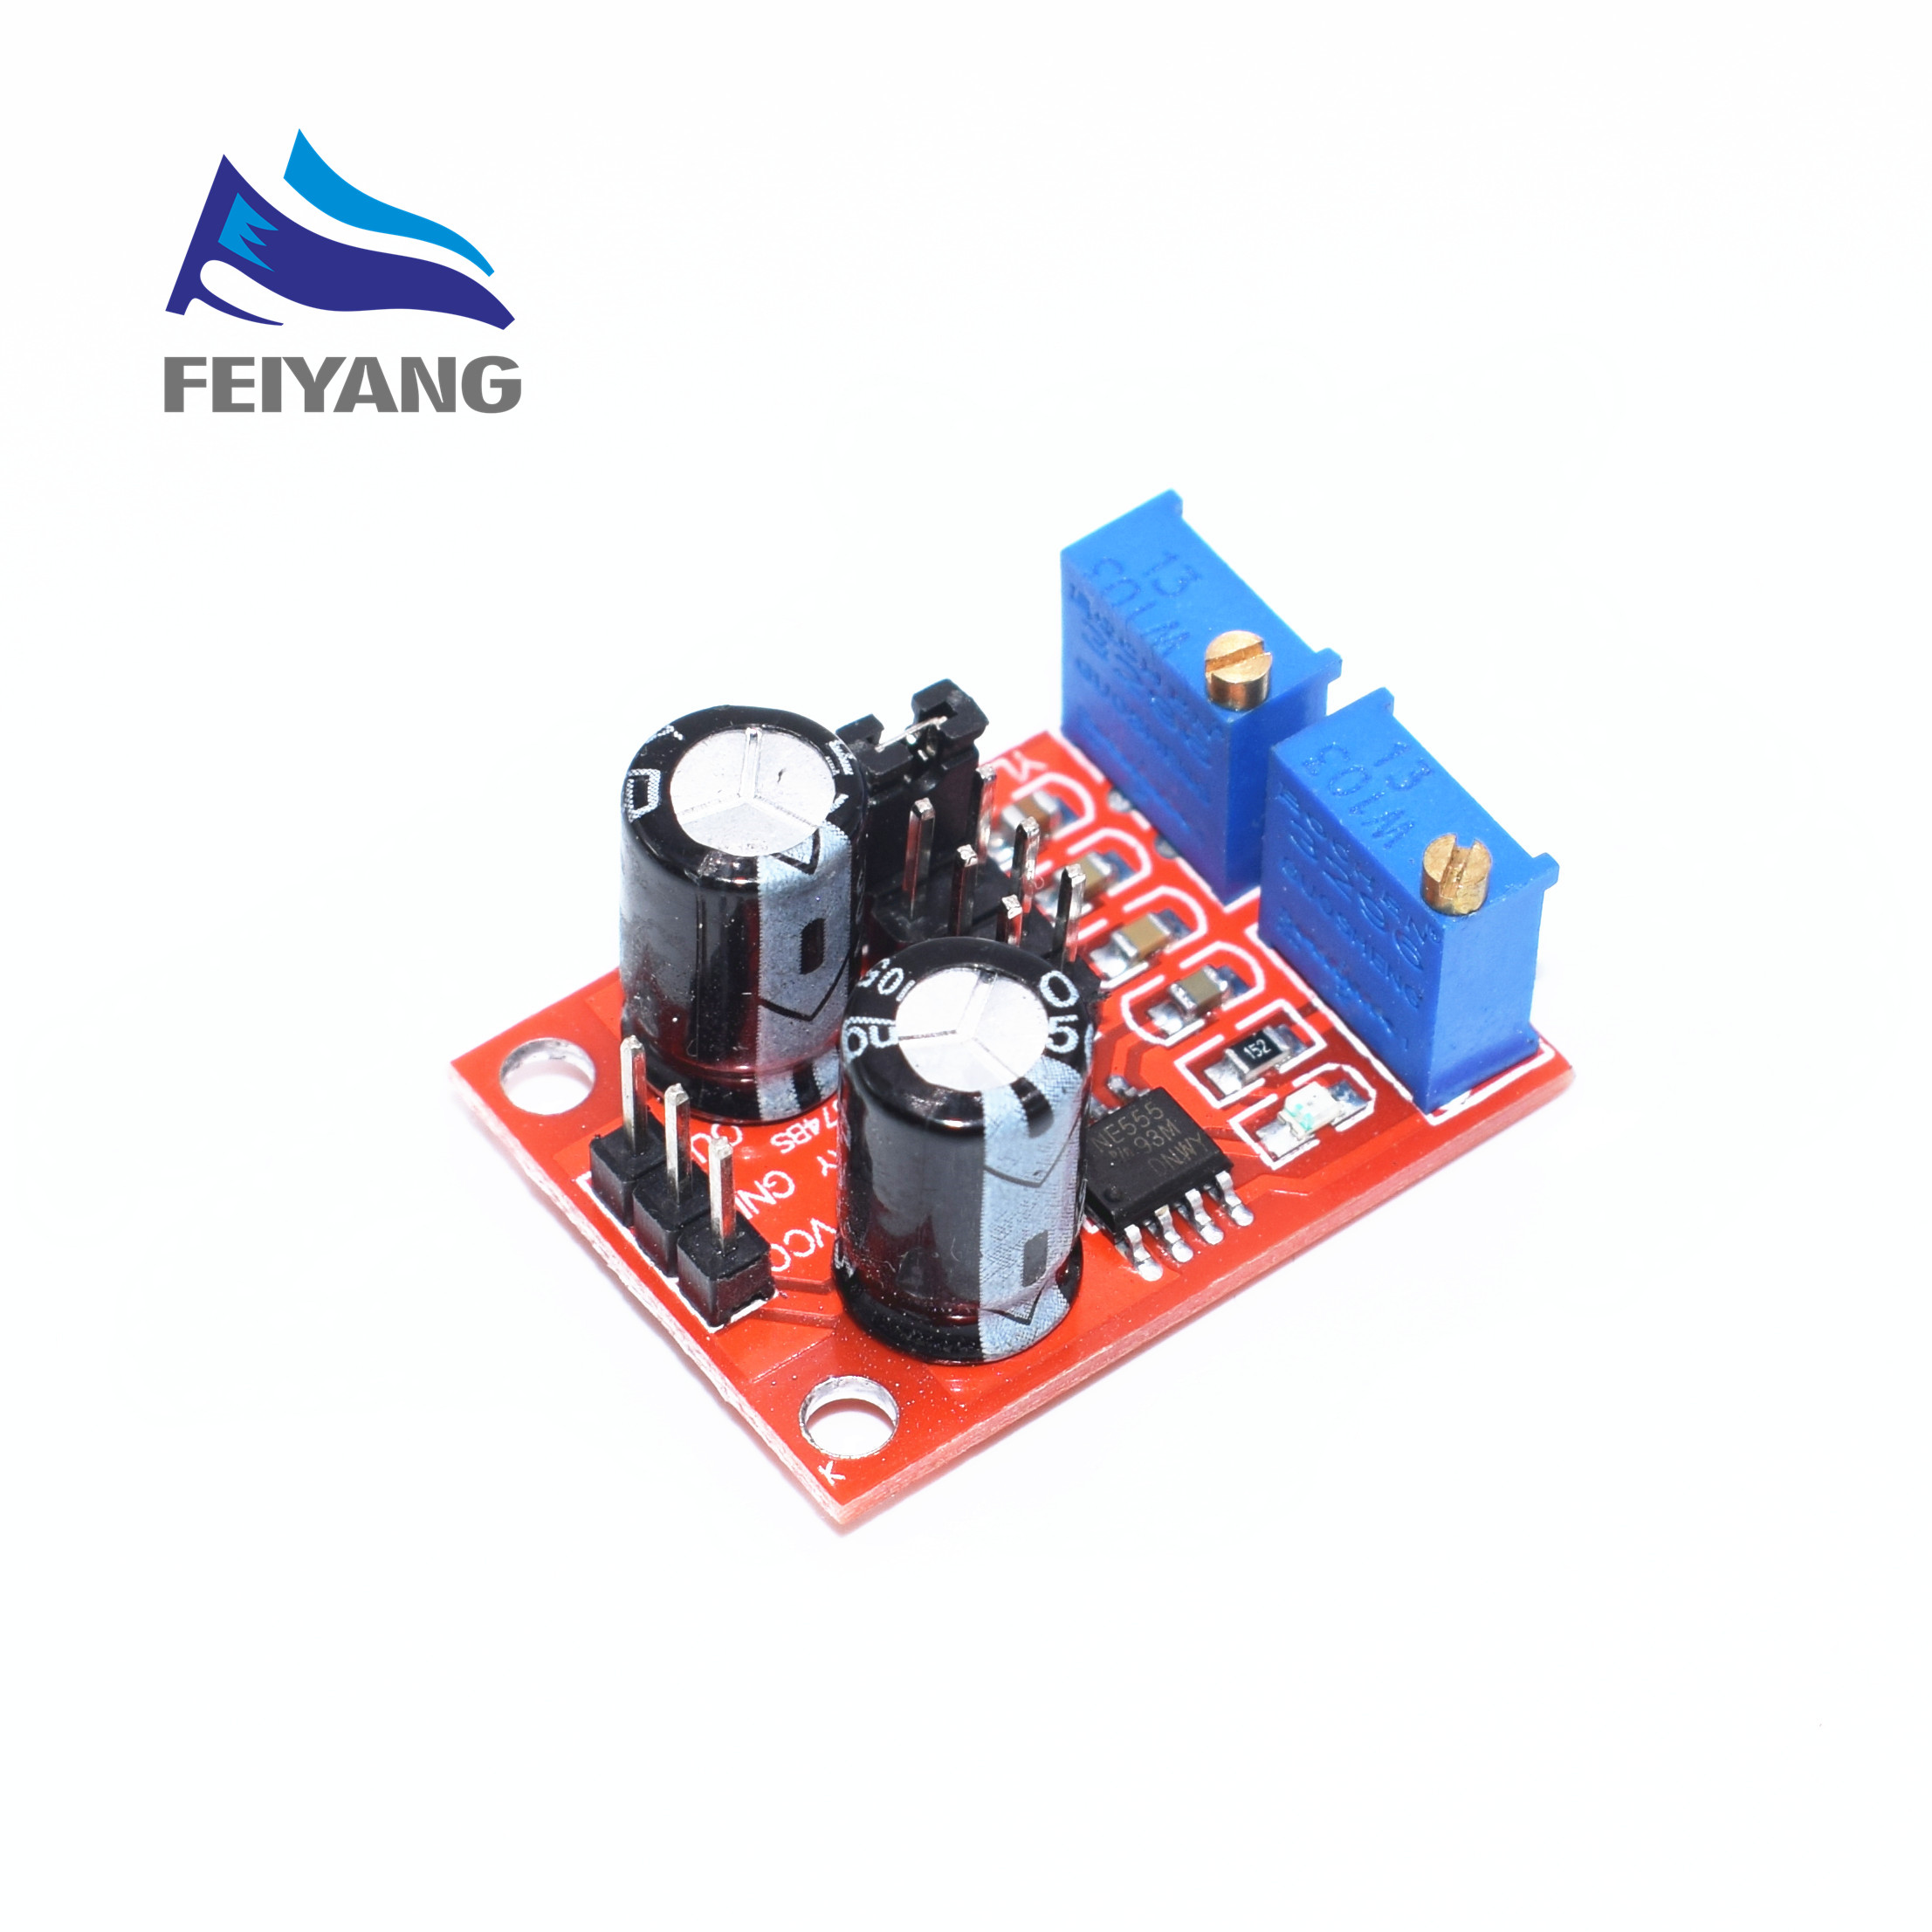 20pcs Ne555 Pulse Frequency Duty Cycle Adjustable Module Square Wave Arbitrarydutycycle Squarewave Oscillator Circuit Diagram Signal Generator